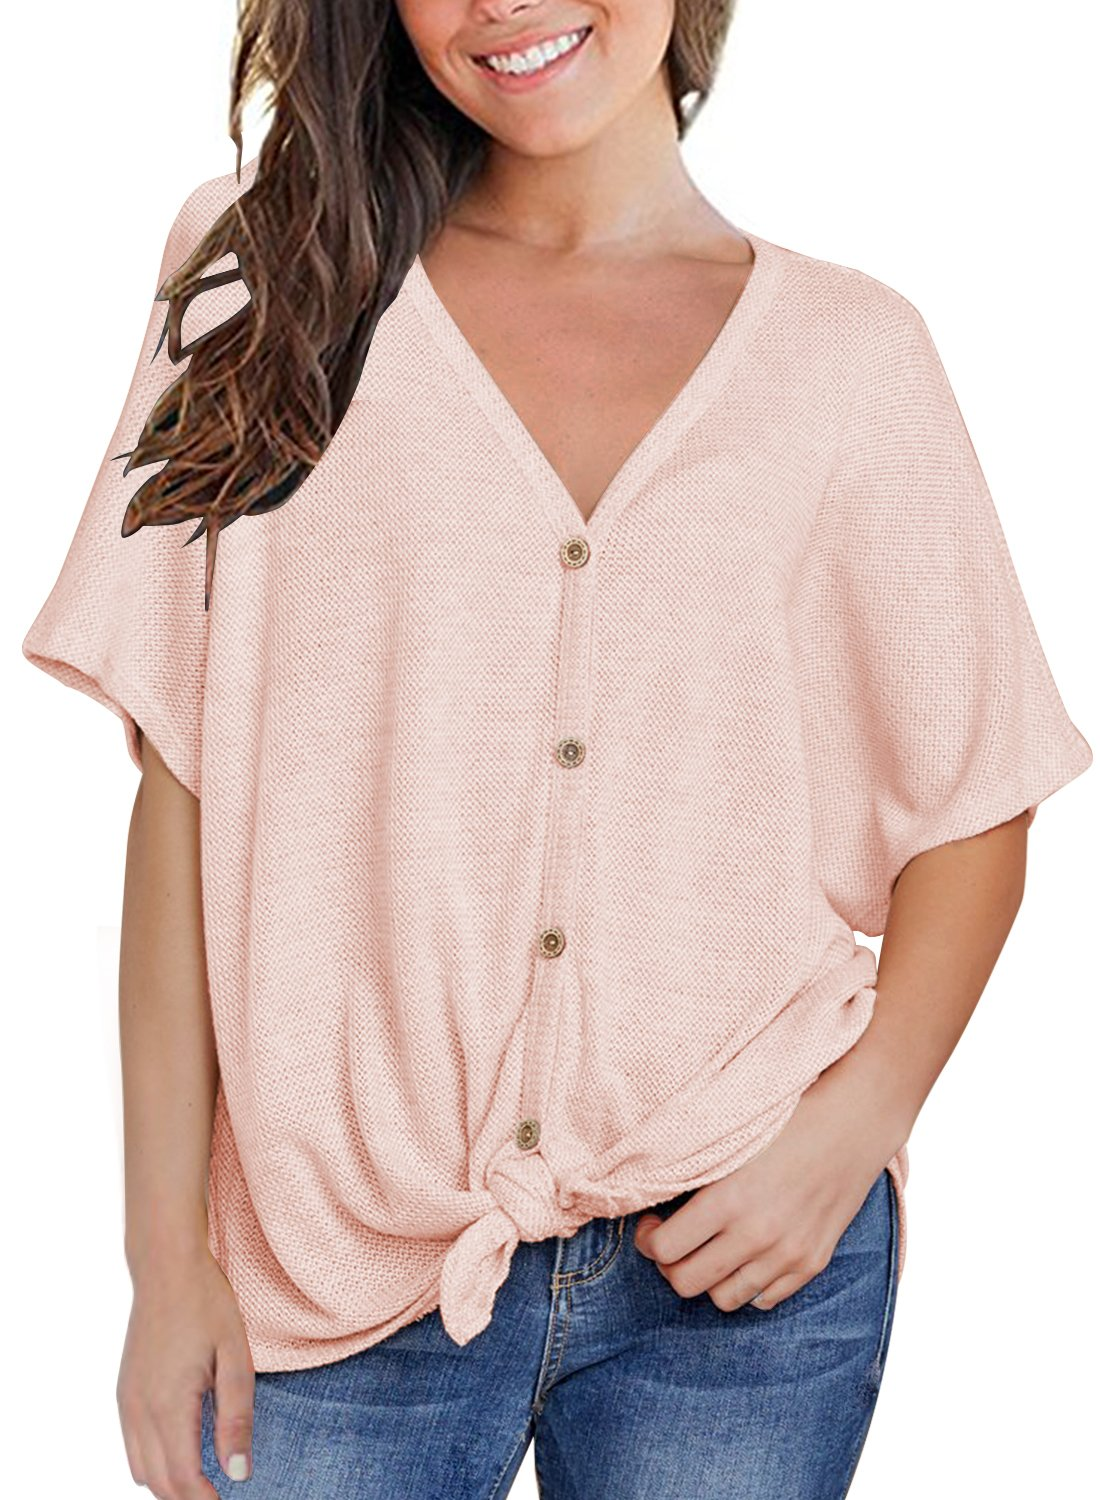 MIHOLL Womens Loose Blouse Short Sleeve V Neck Button Down T Shirts Nursing Tops (Large, Pink)